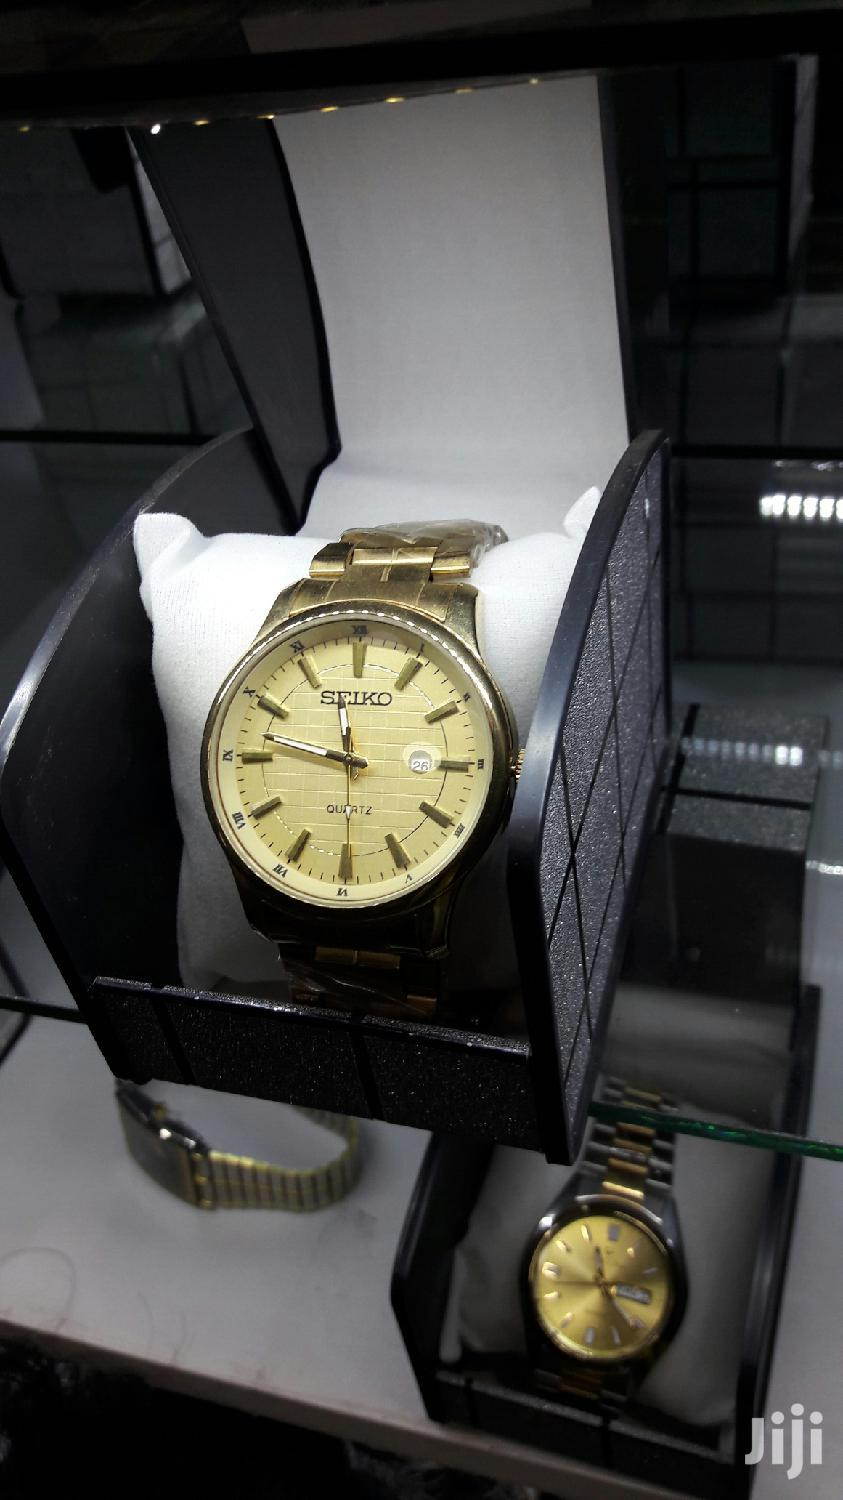 Orignal Watches Available | Watches for sale in Kampala, Central Region, Uganda